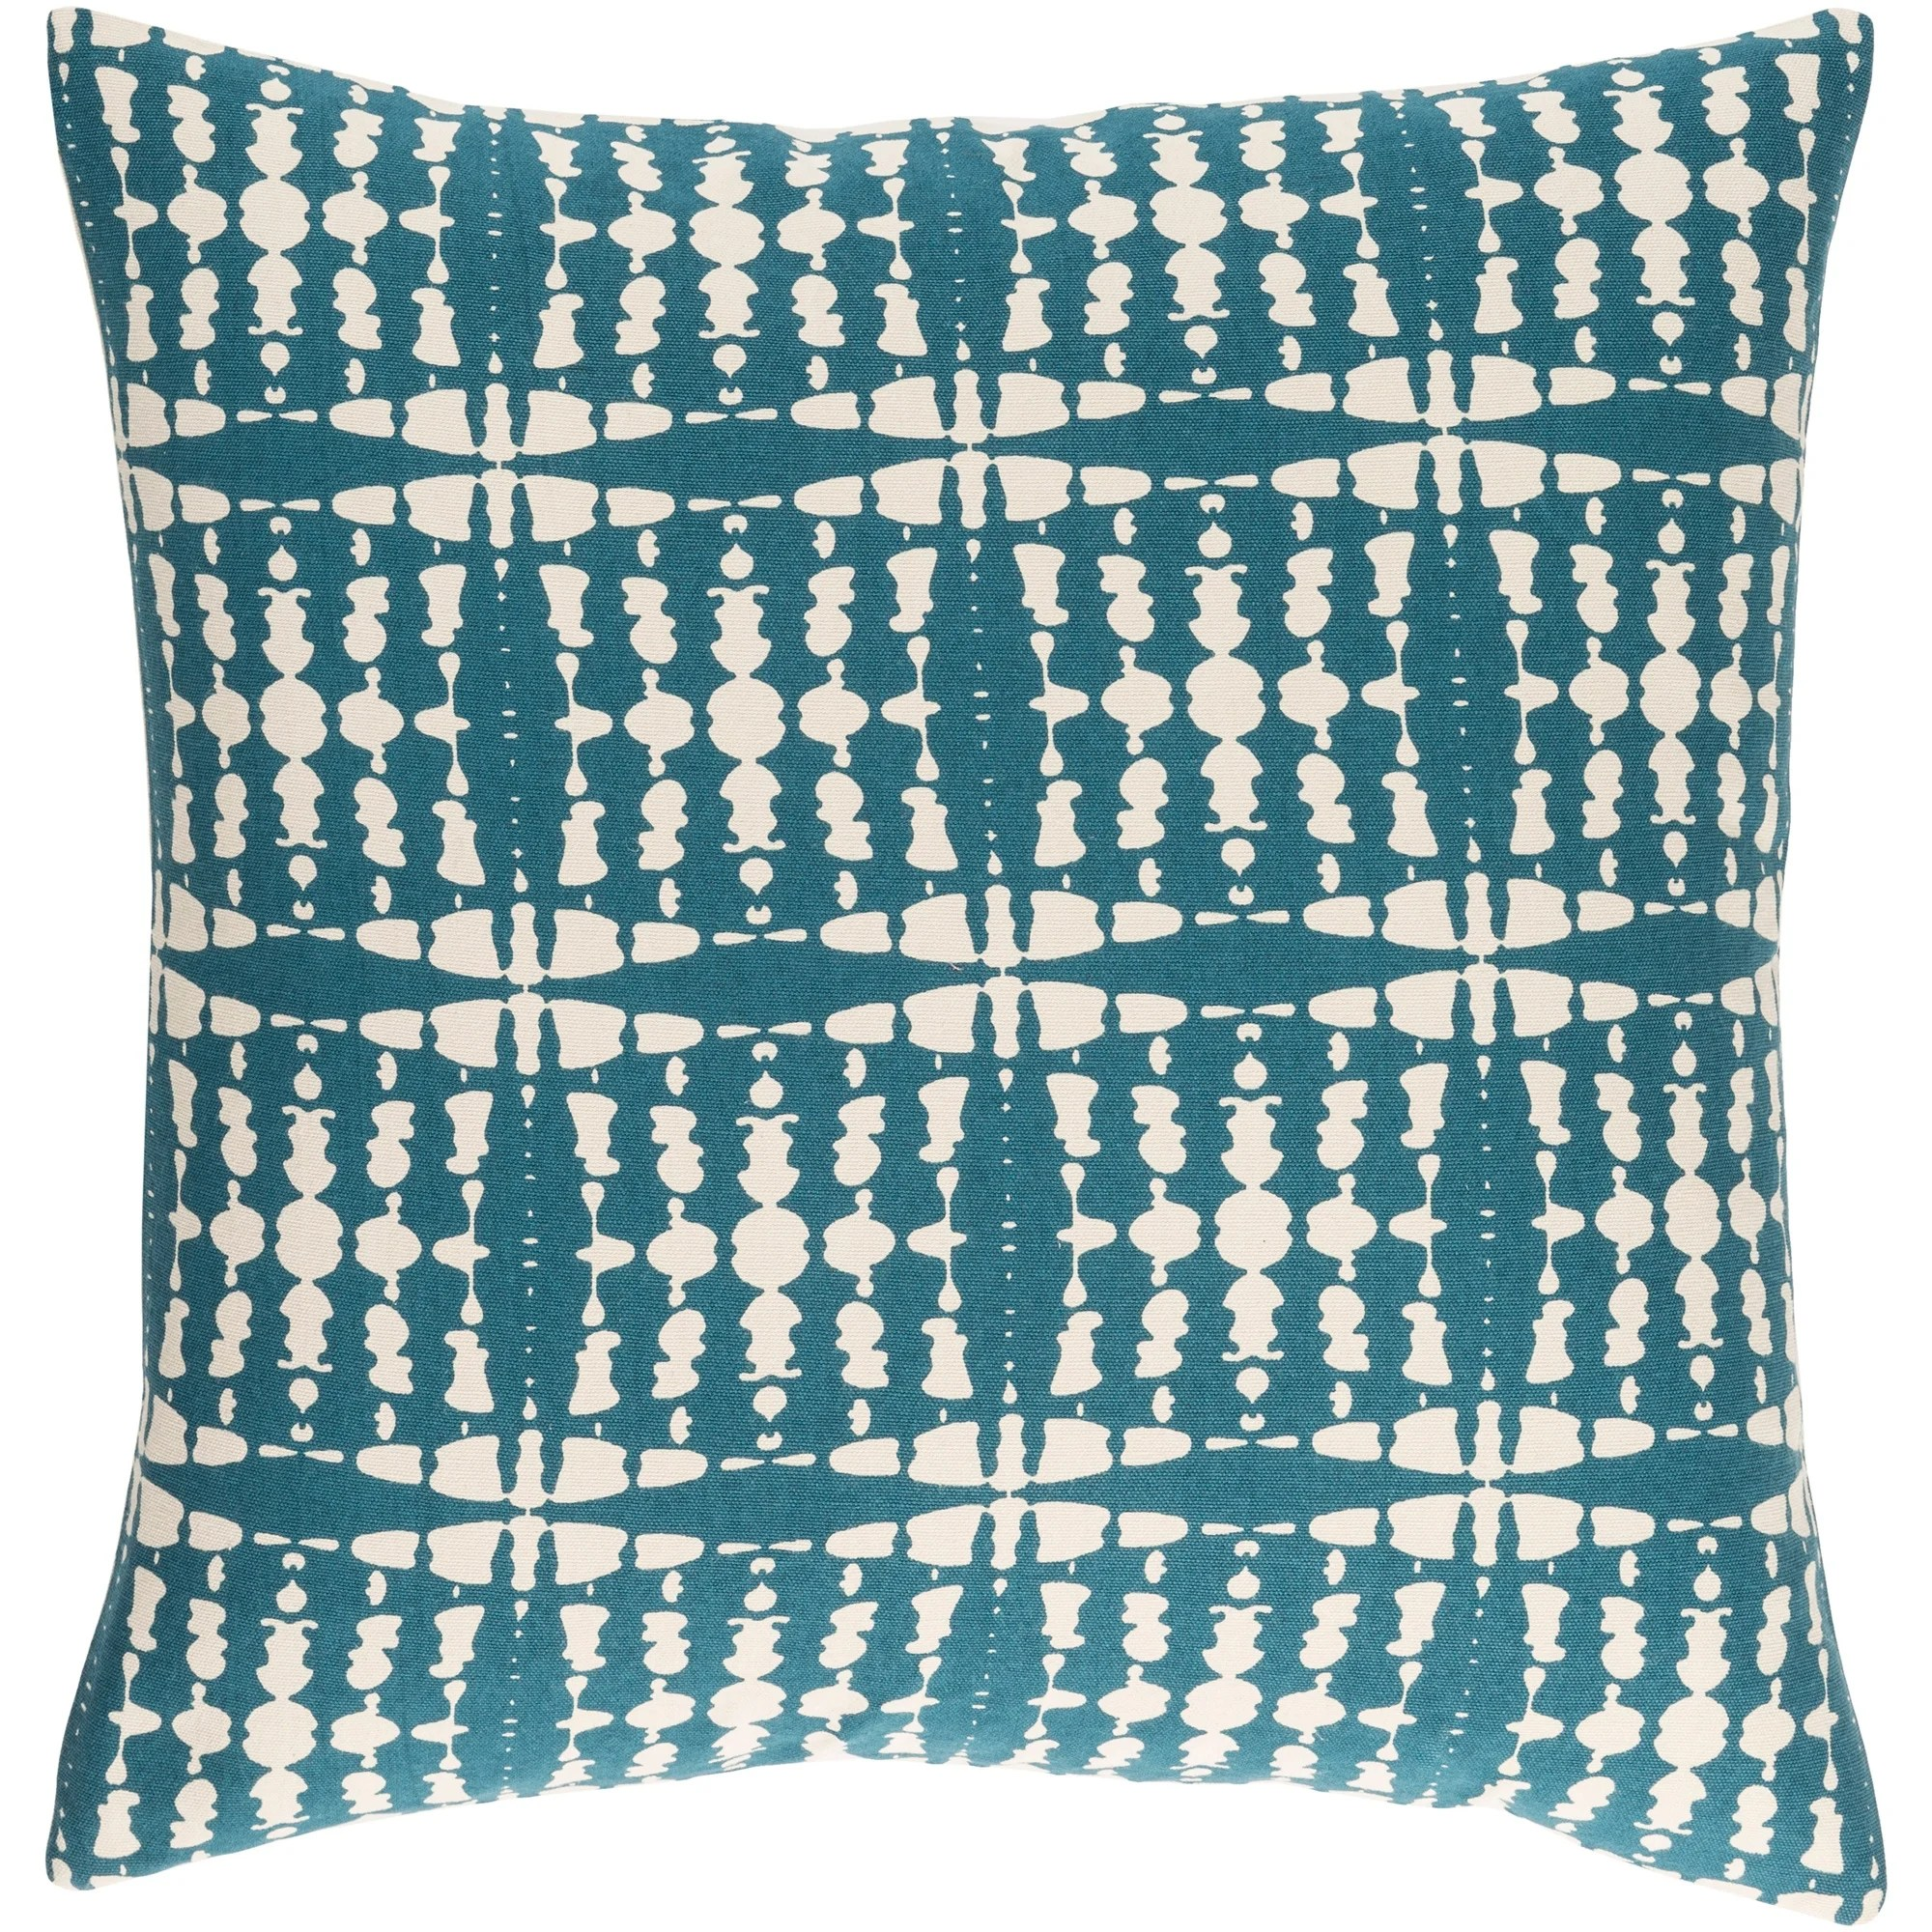 decorative staveley teal blue 22 inch throw pillow cover